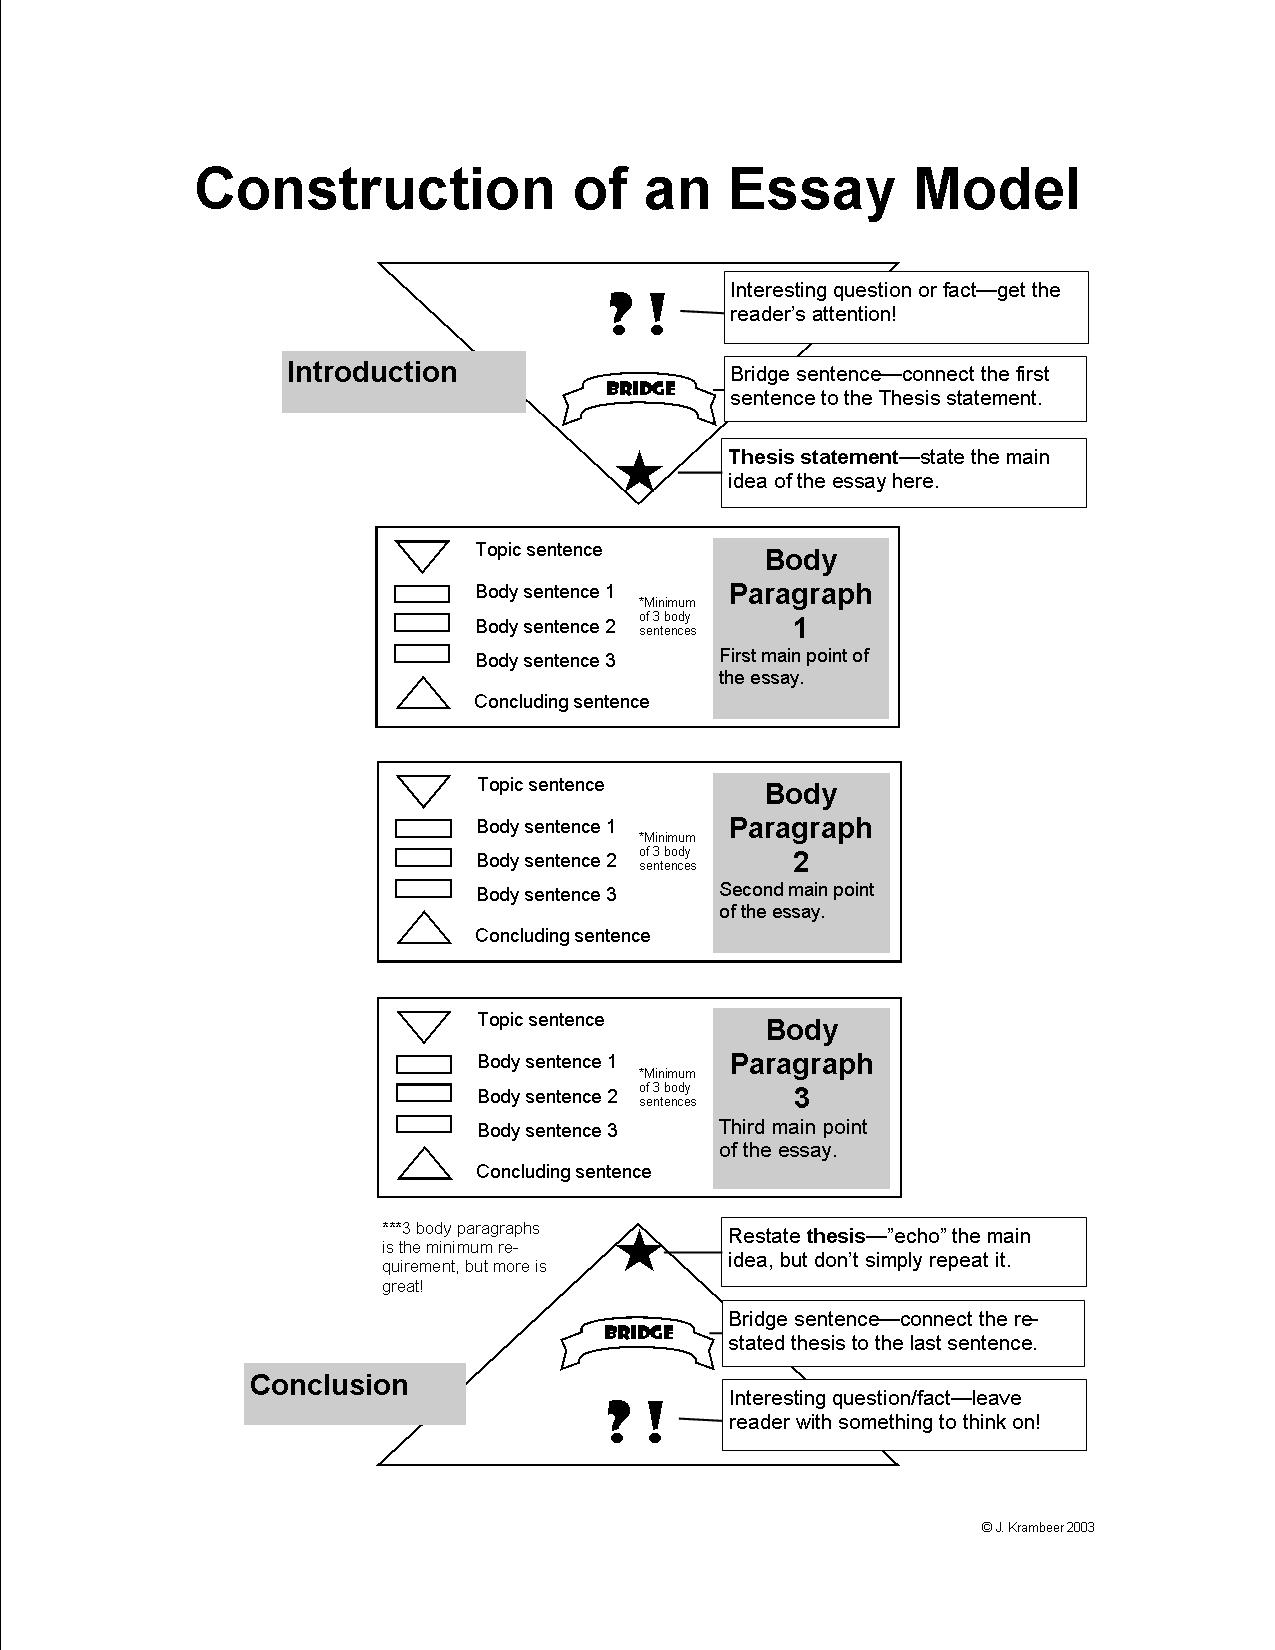 Referencing Essays The Dangers Of Speeding Pulse Protects Hierintelligence Creative Argumentative Essay Topics also A Life Changing Experience Essay Homework Writershomework Writers Dangers Of Speeding Essay Best Mba  Self Introduction Essay Example